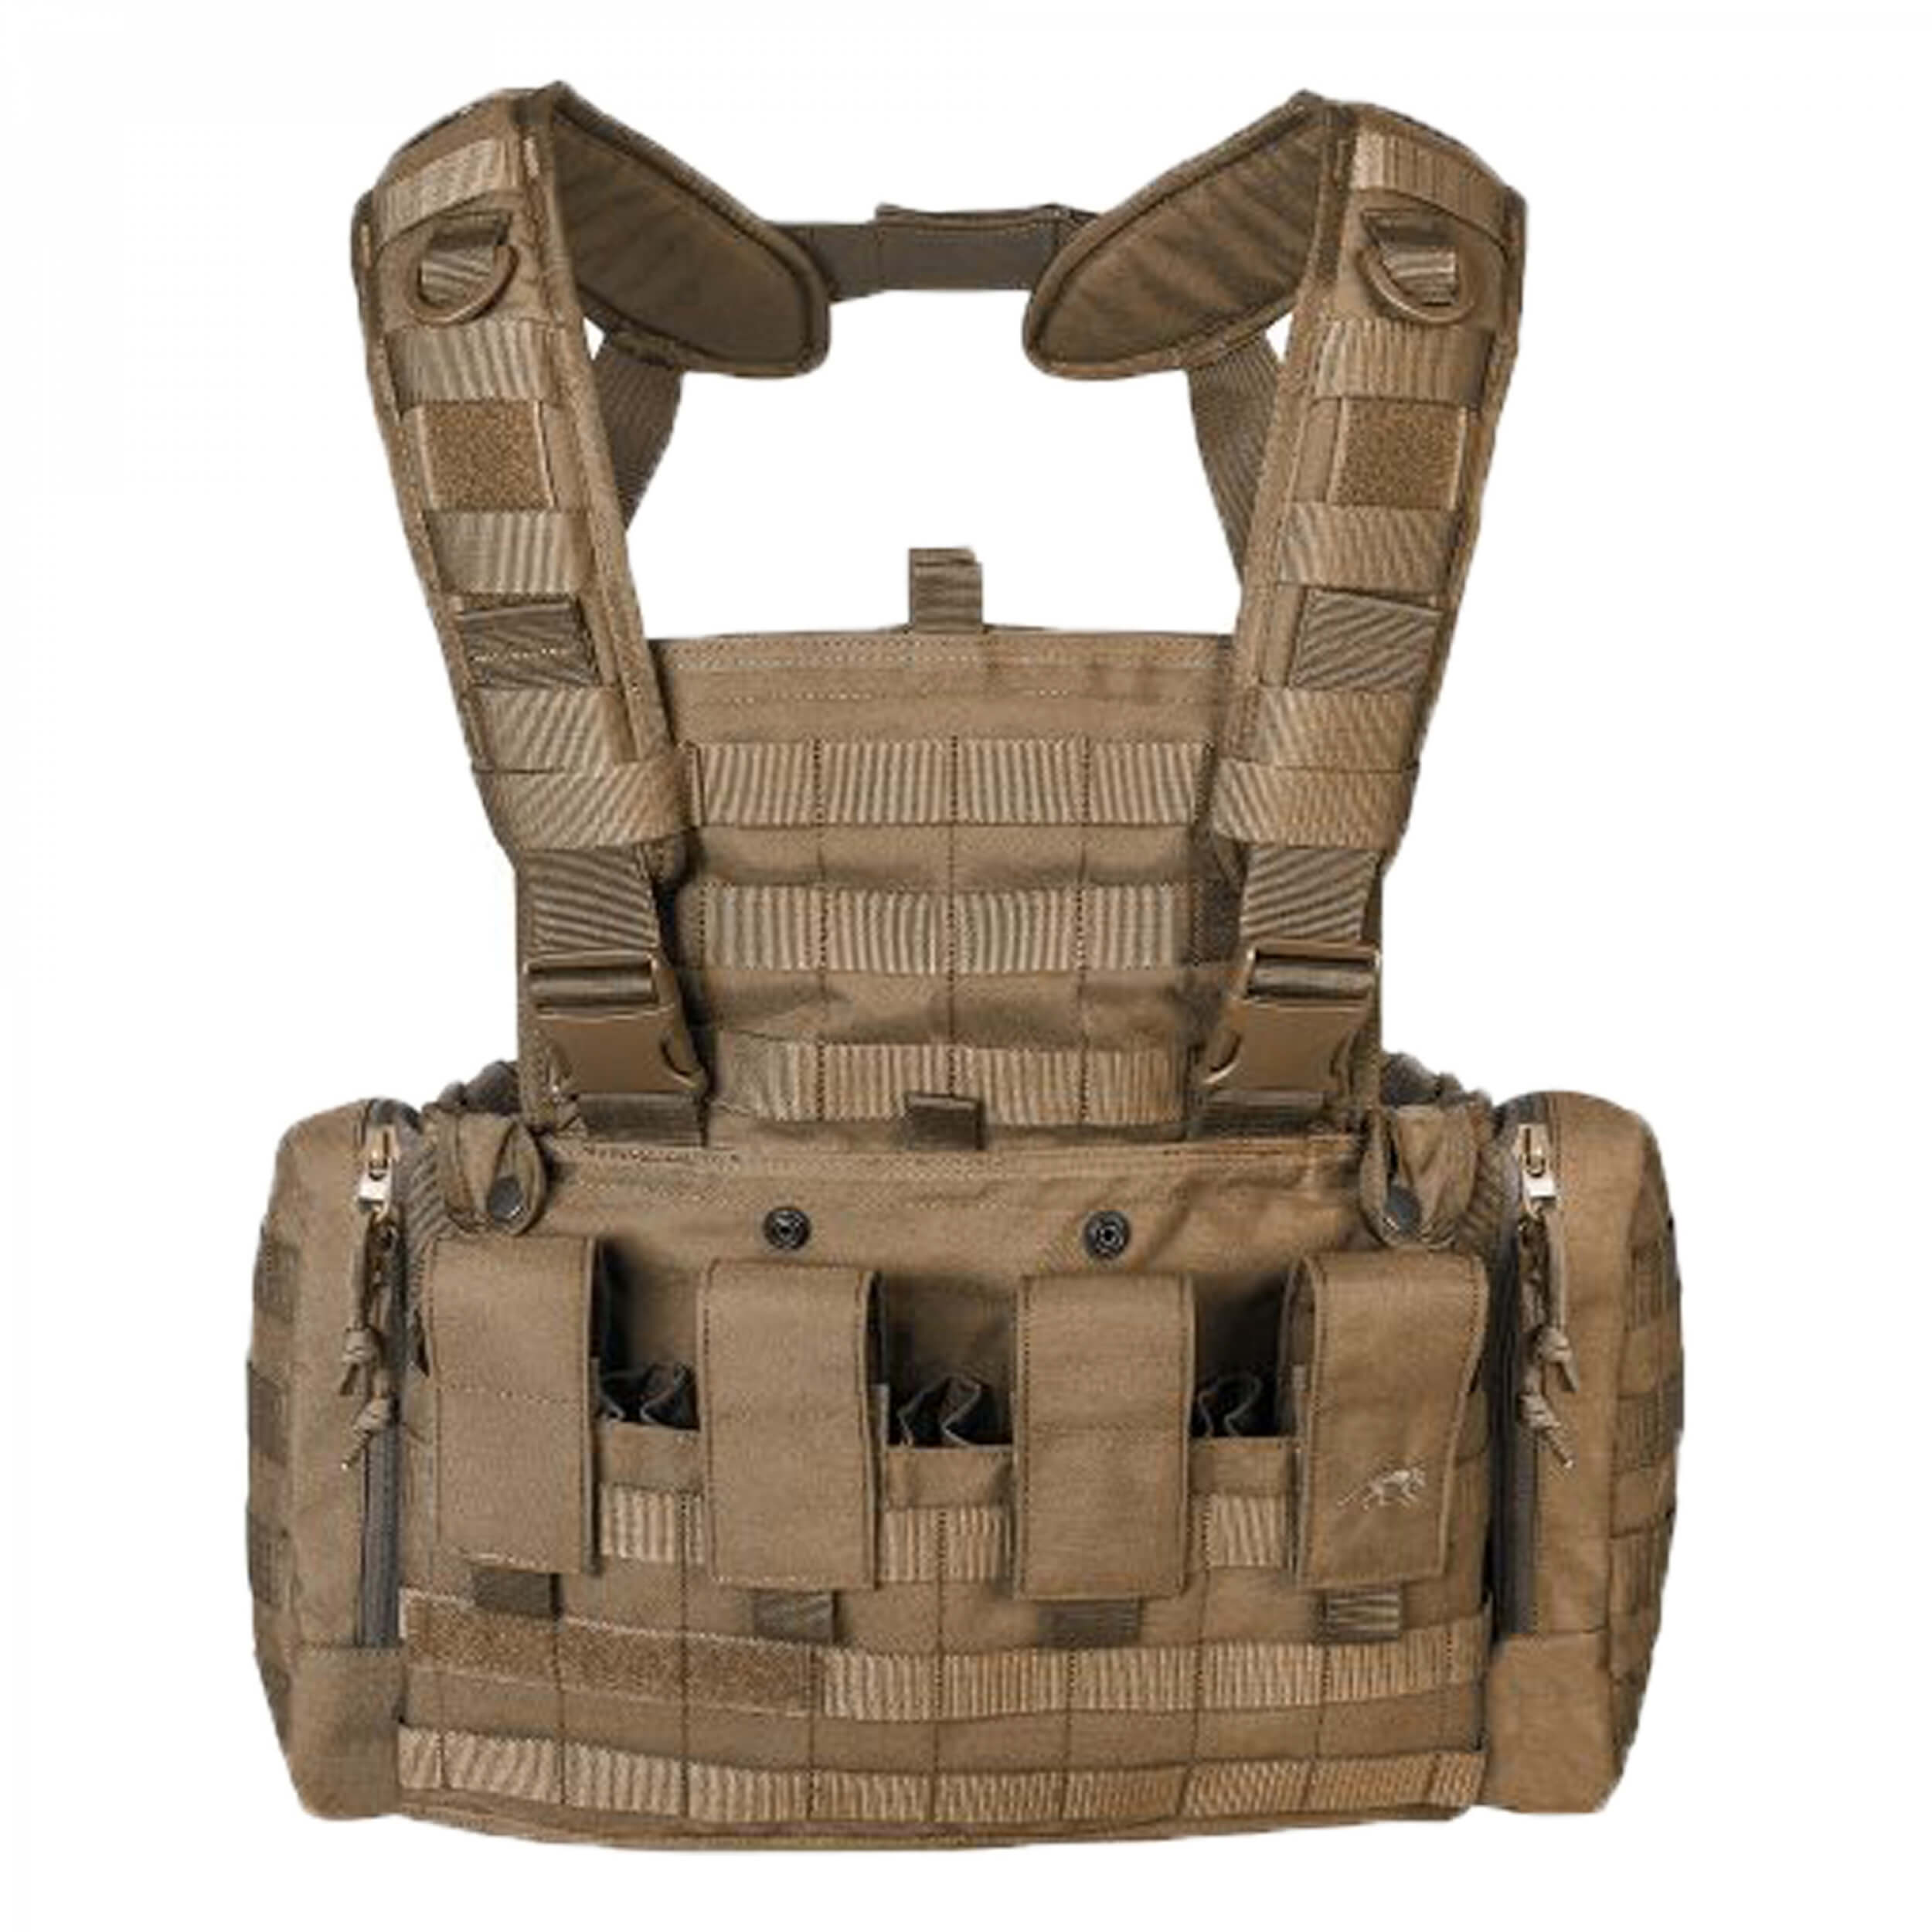 Tasmanian Tiger CHEST RIG MK II coyote brown